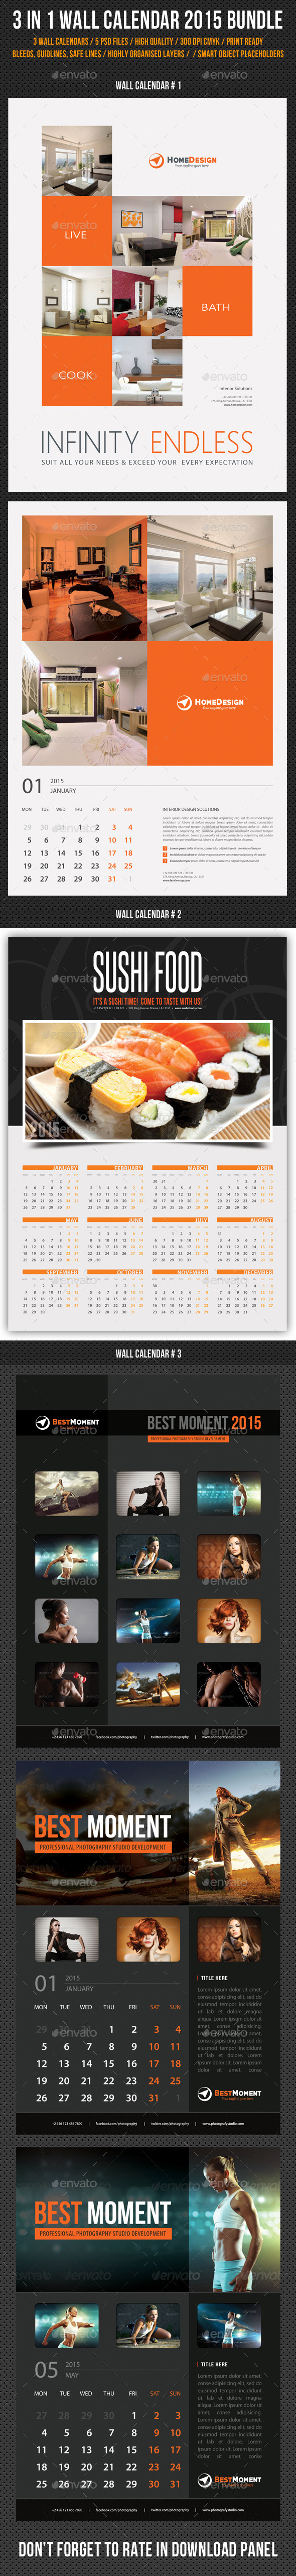 GraphicRiver 3 in 1 Wall Calendar 2015 Bundle V06 9573448